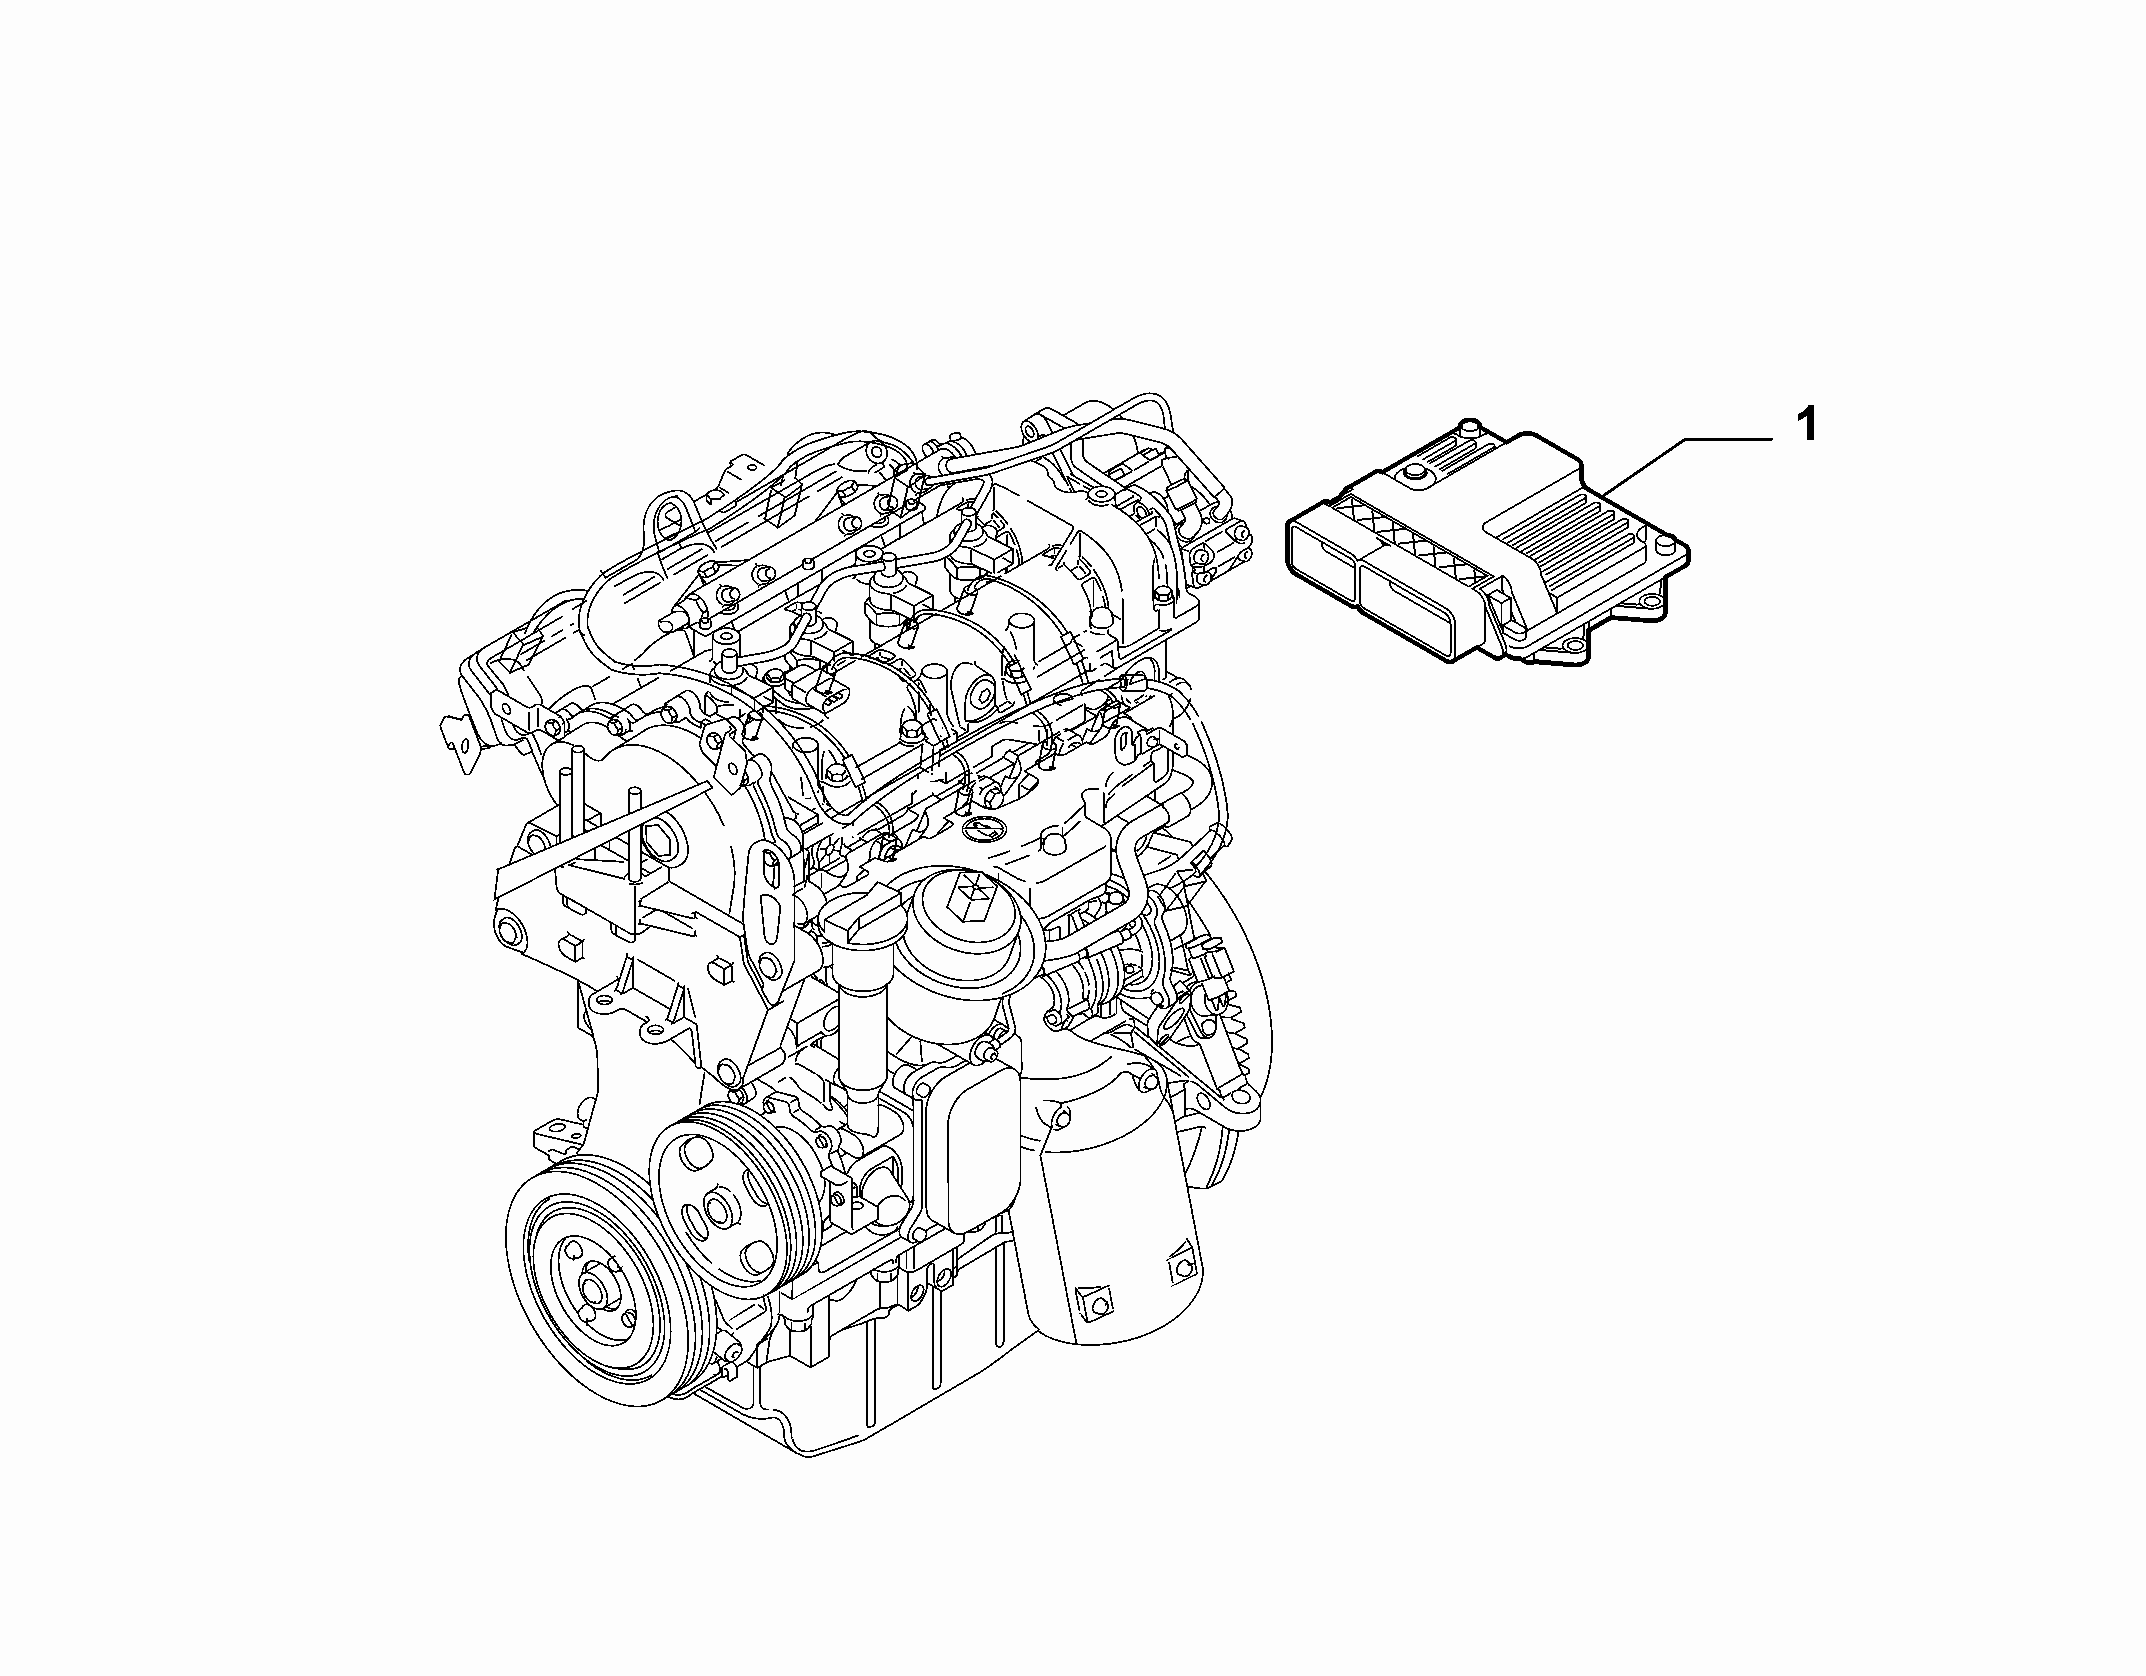 10226-050 CENTRALISED IGNITION CONTROL